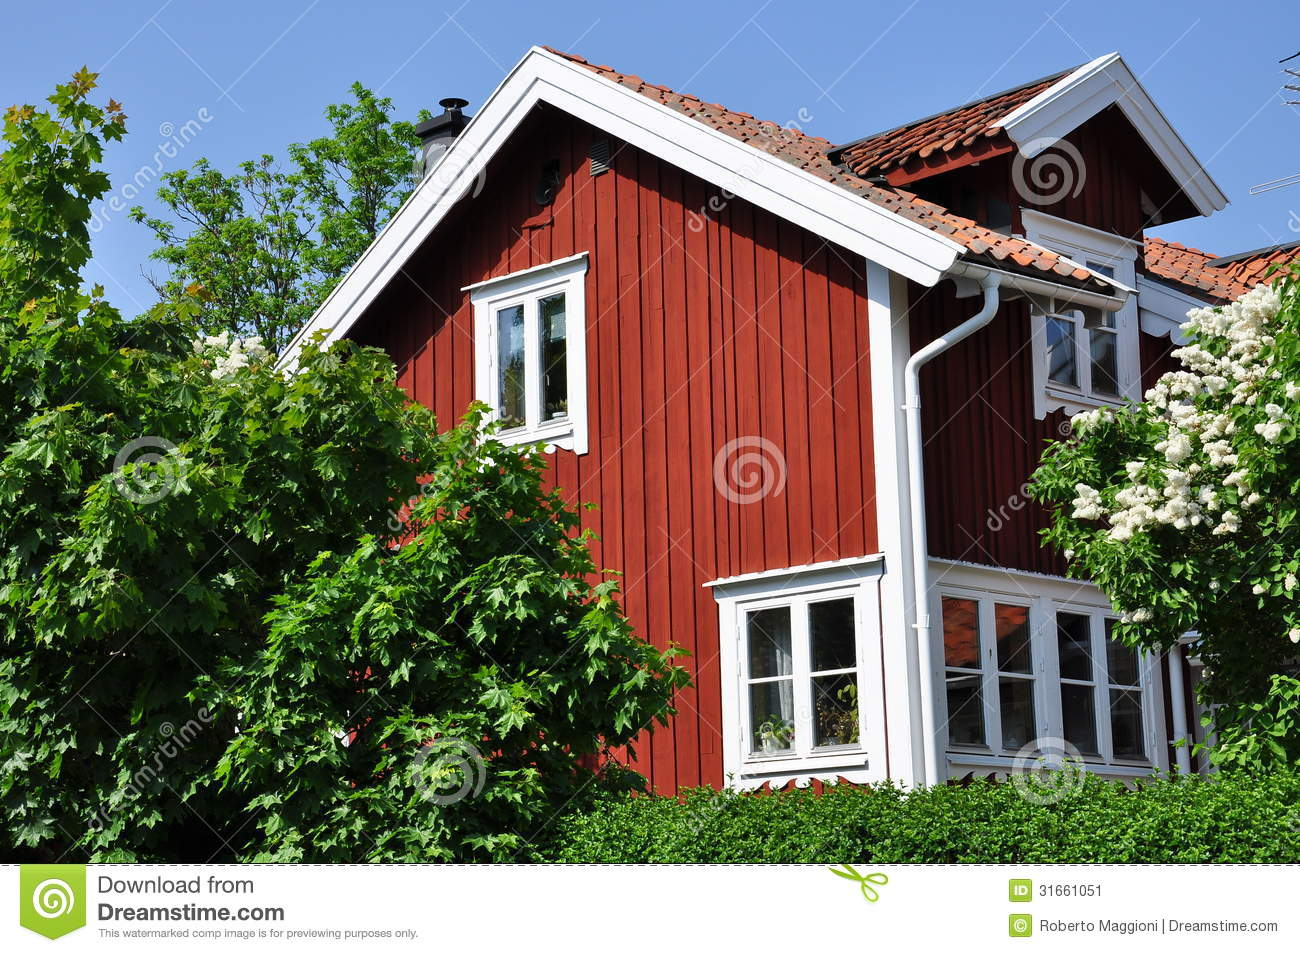 White Wood House : traditional red and white Swedish wood house.